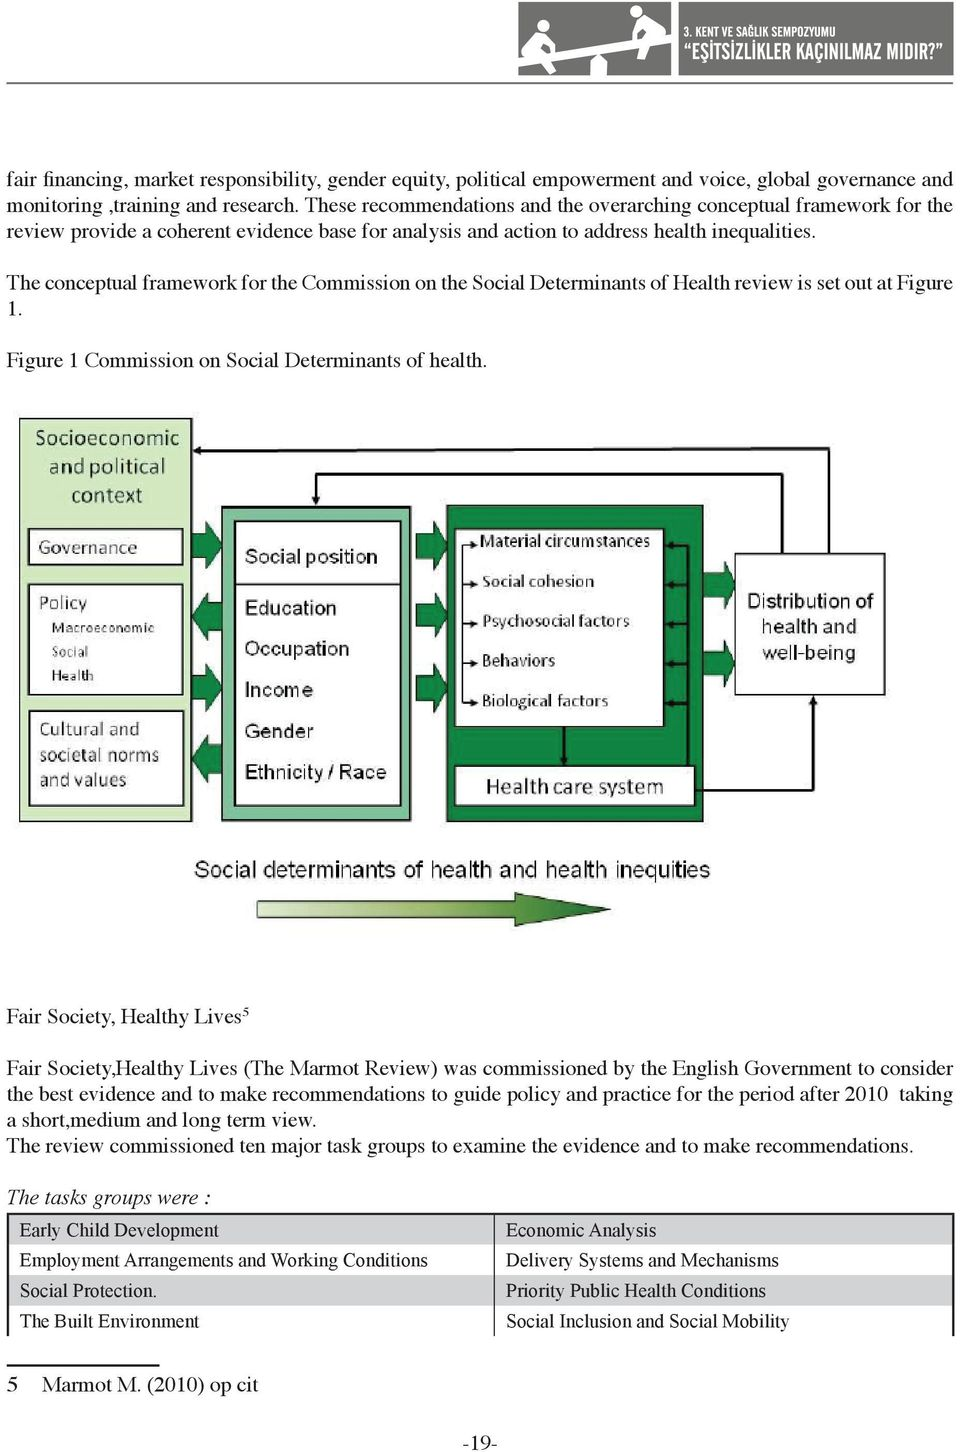 The conceptual framework for the Commission on the Social Determinants of Health review is set out at Figure 1. Figure 1 Commission on Social Determinants of health.